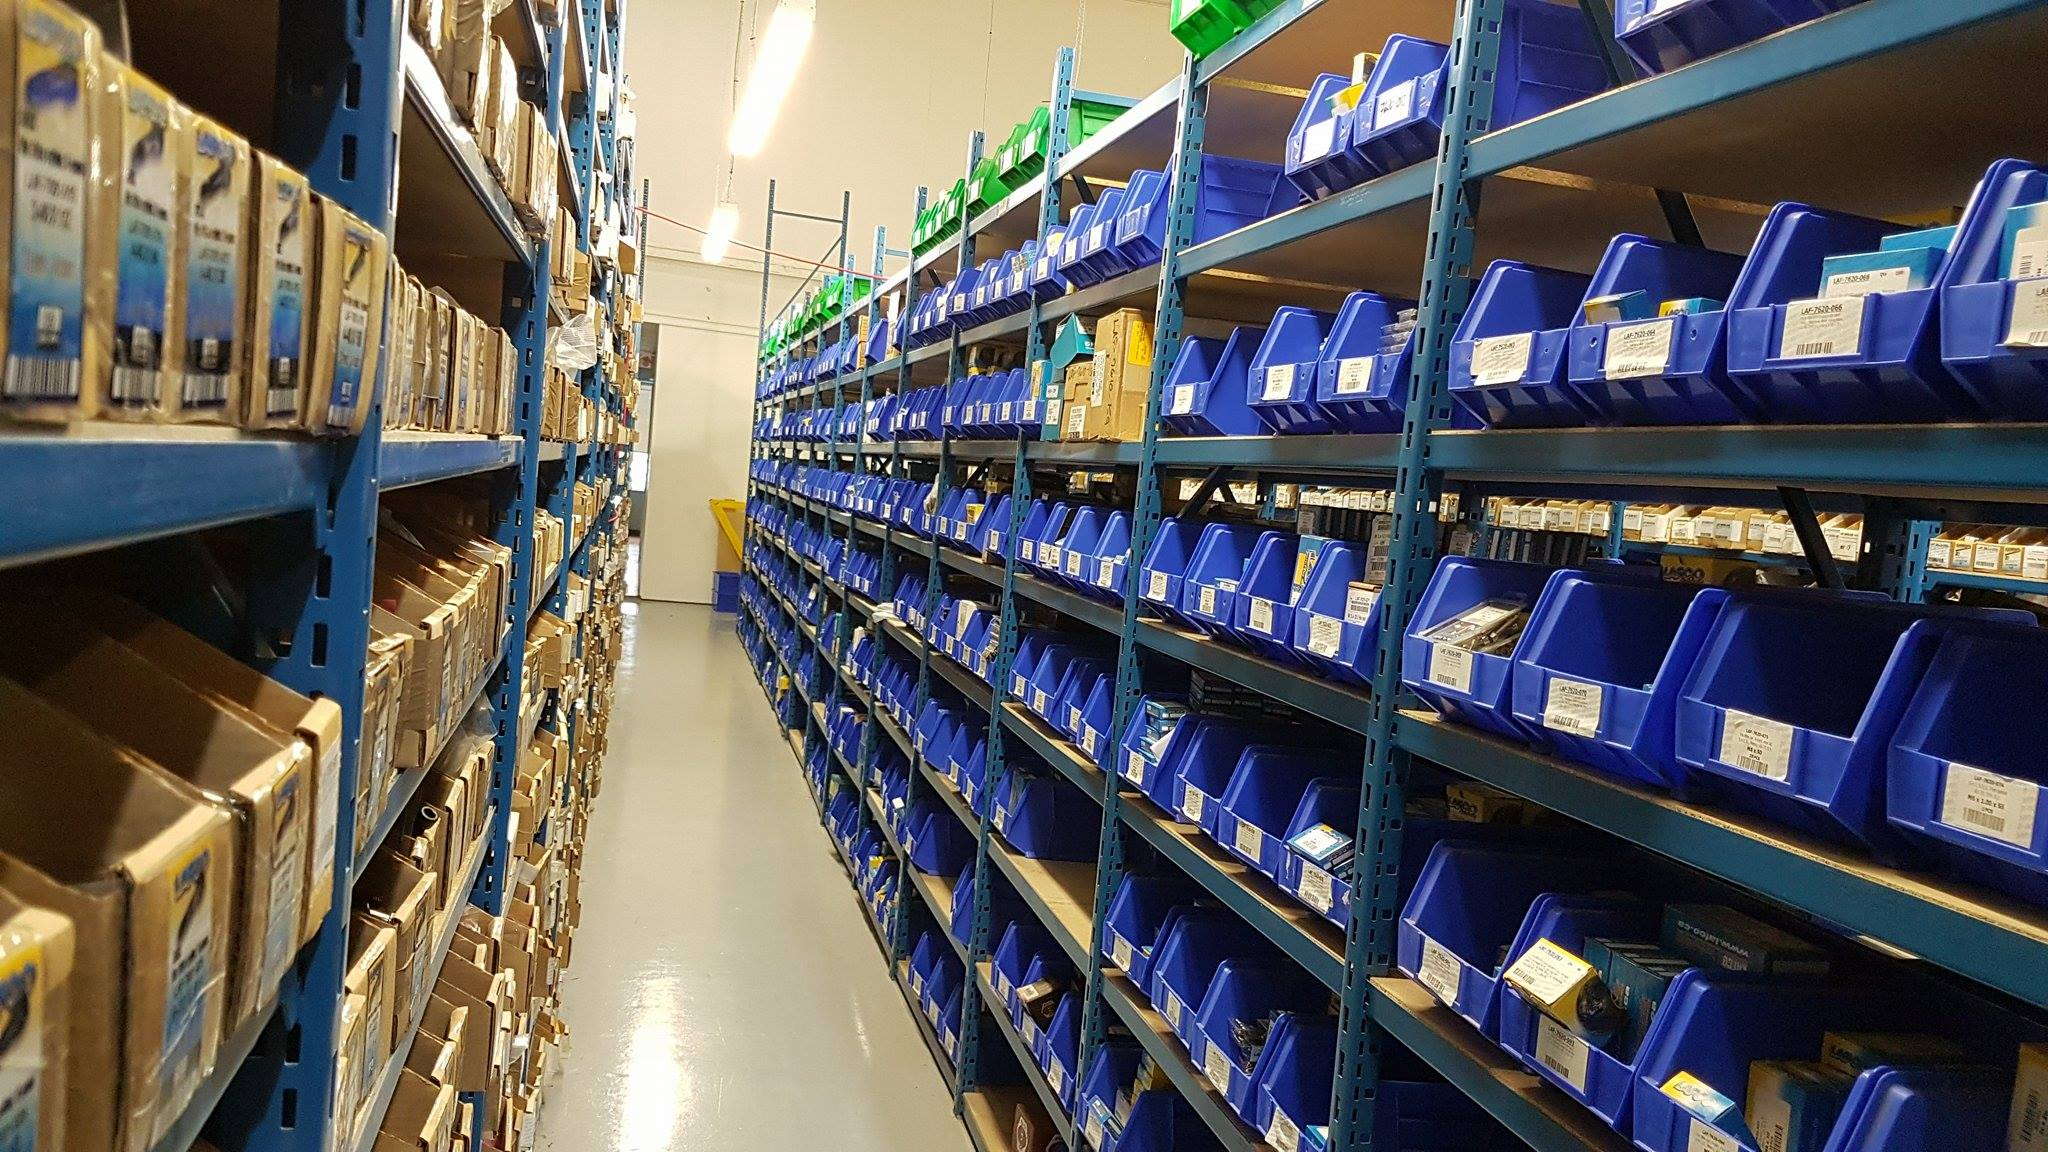 30,000 items available at Lafco Tooling